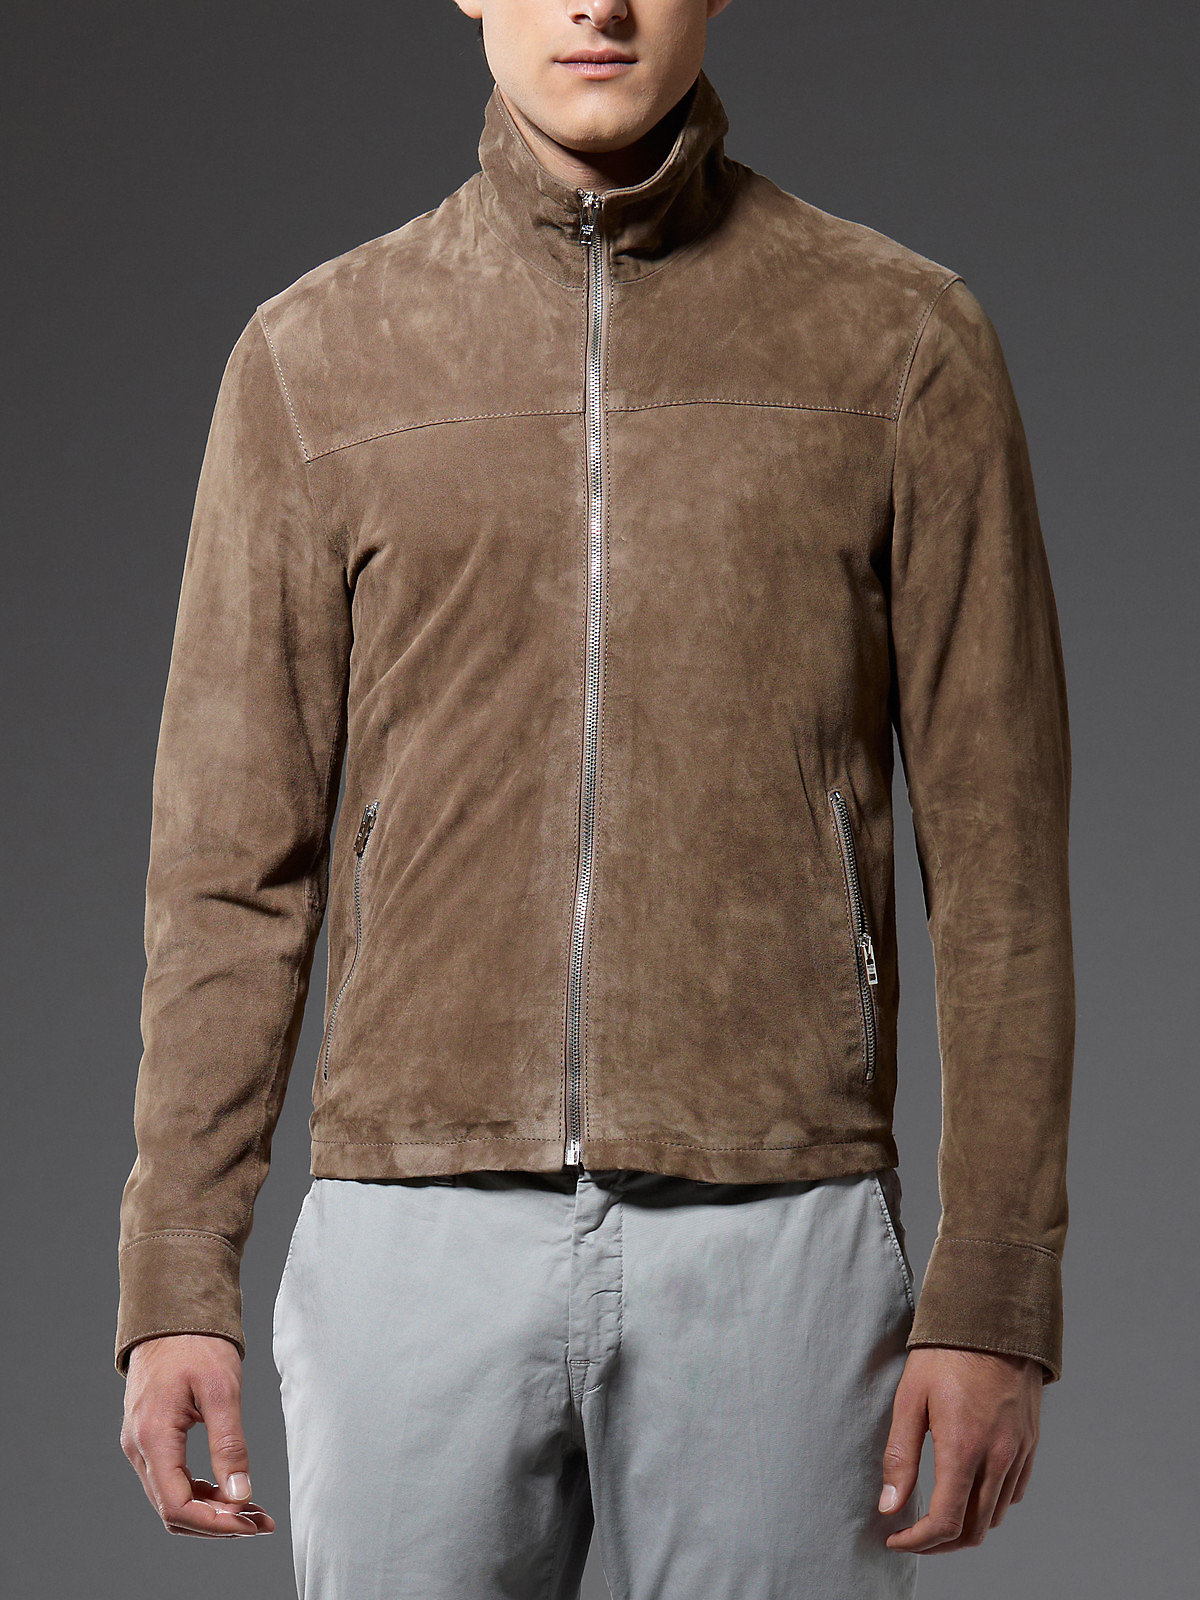 Patrizia Pepe Suede Jacket With Zip In Brown For Men Lyst